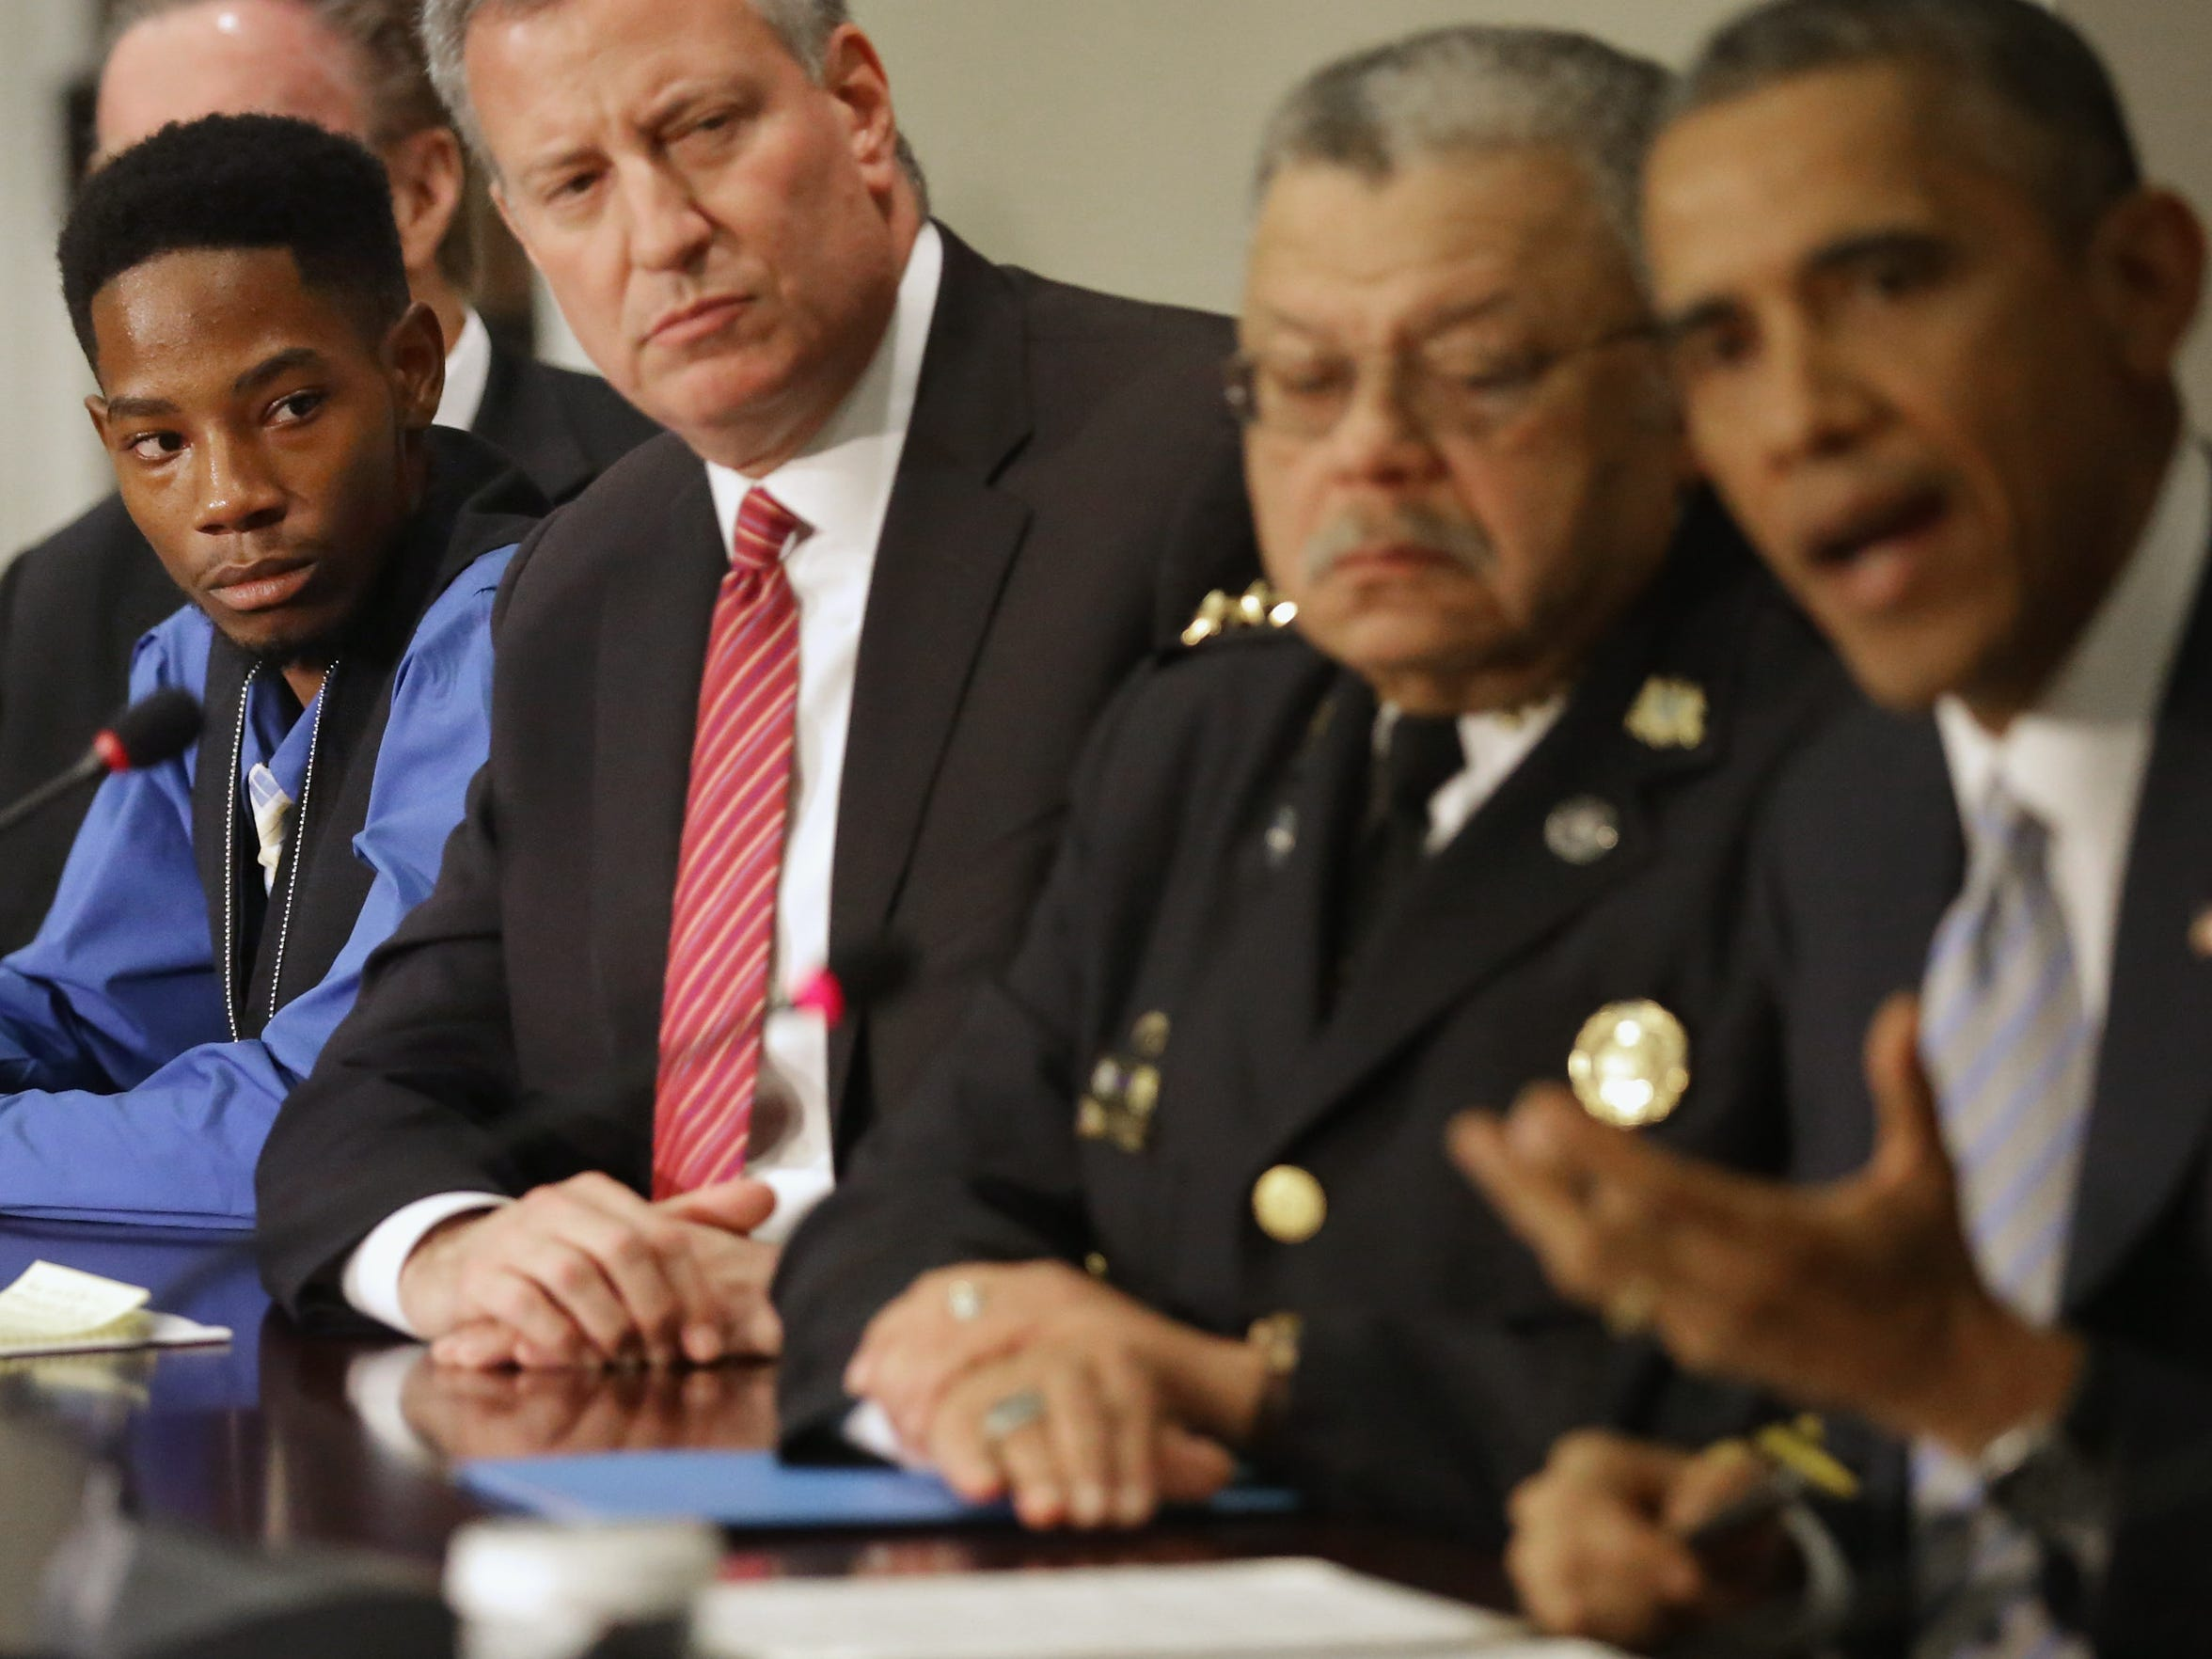 Rasheen Aldridge, far left, listens to President Obama, far right, at the conclusion of a meeting with New York Mayor Bill de Blasio, second from left, Philadelphia Police Department Commissioner Charles Ramsey and other elected officials on  Dec. 1, 2014, in Washington.